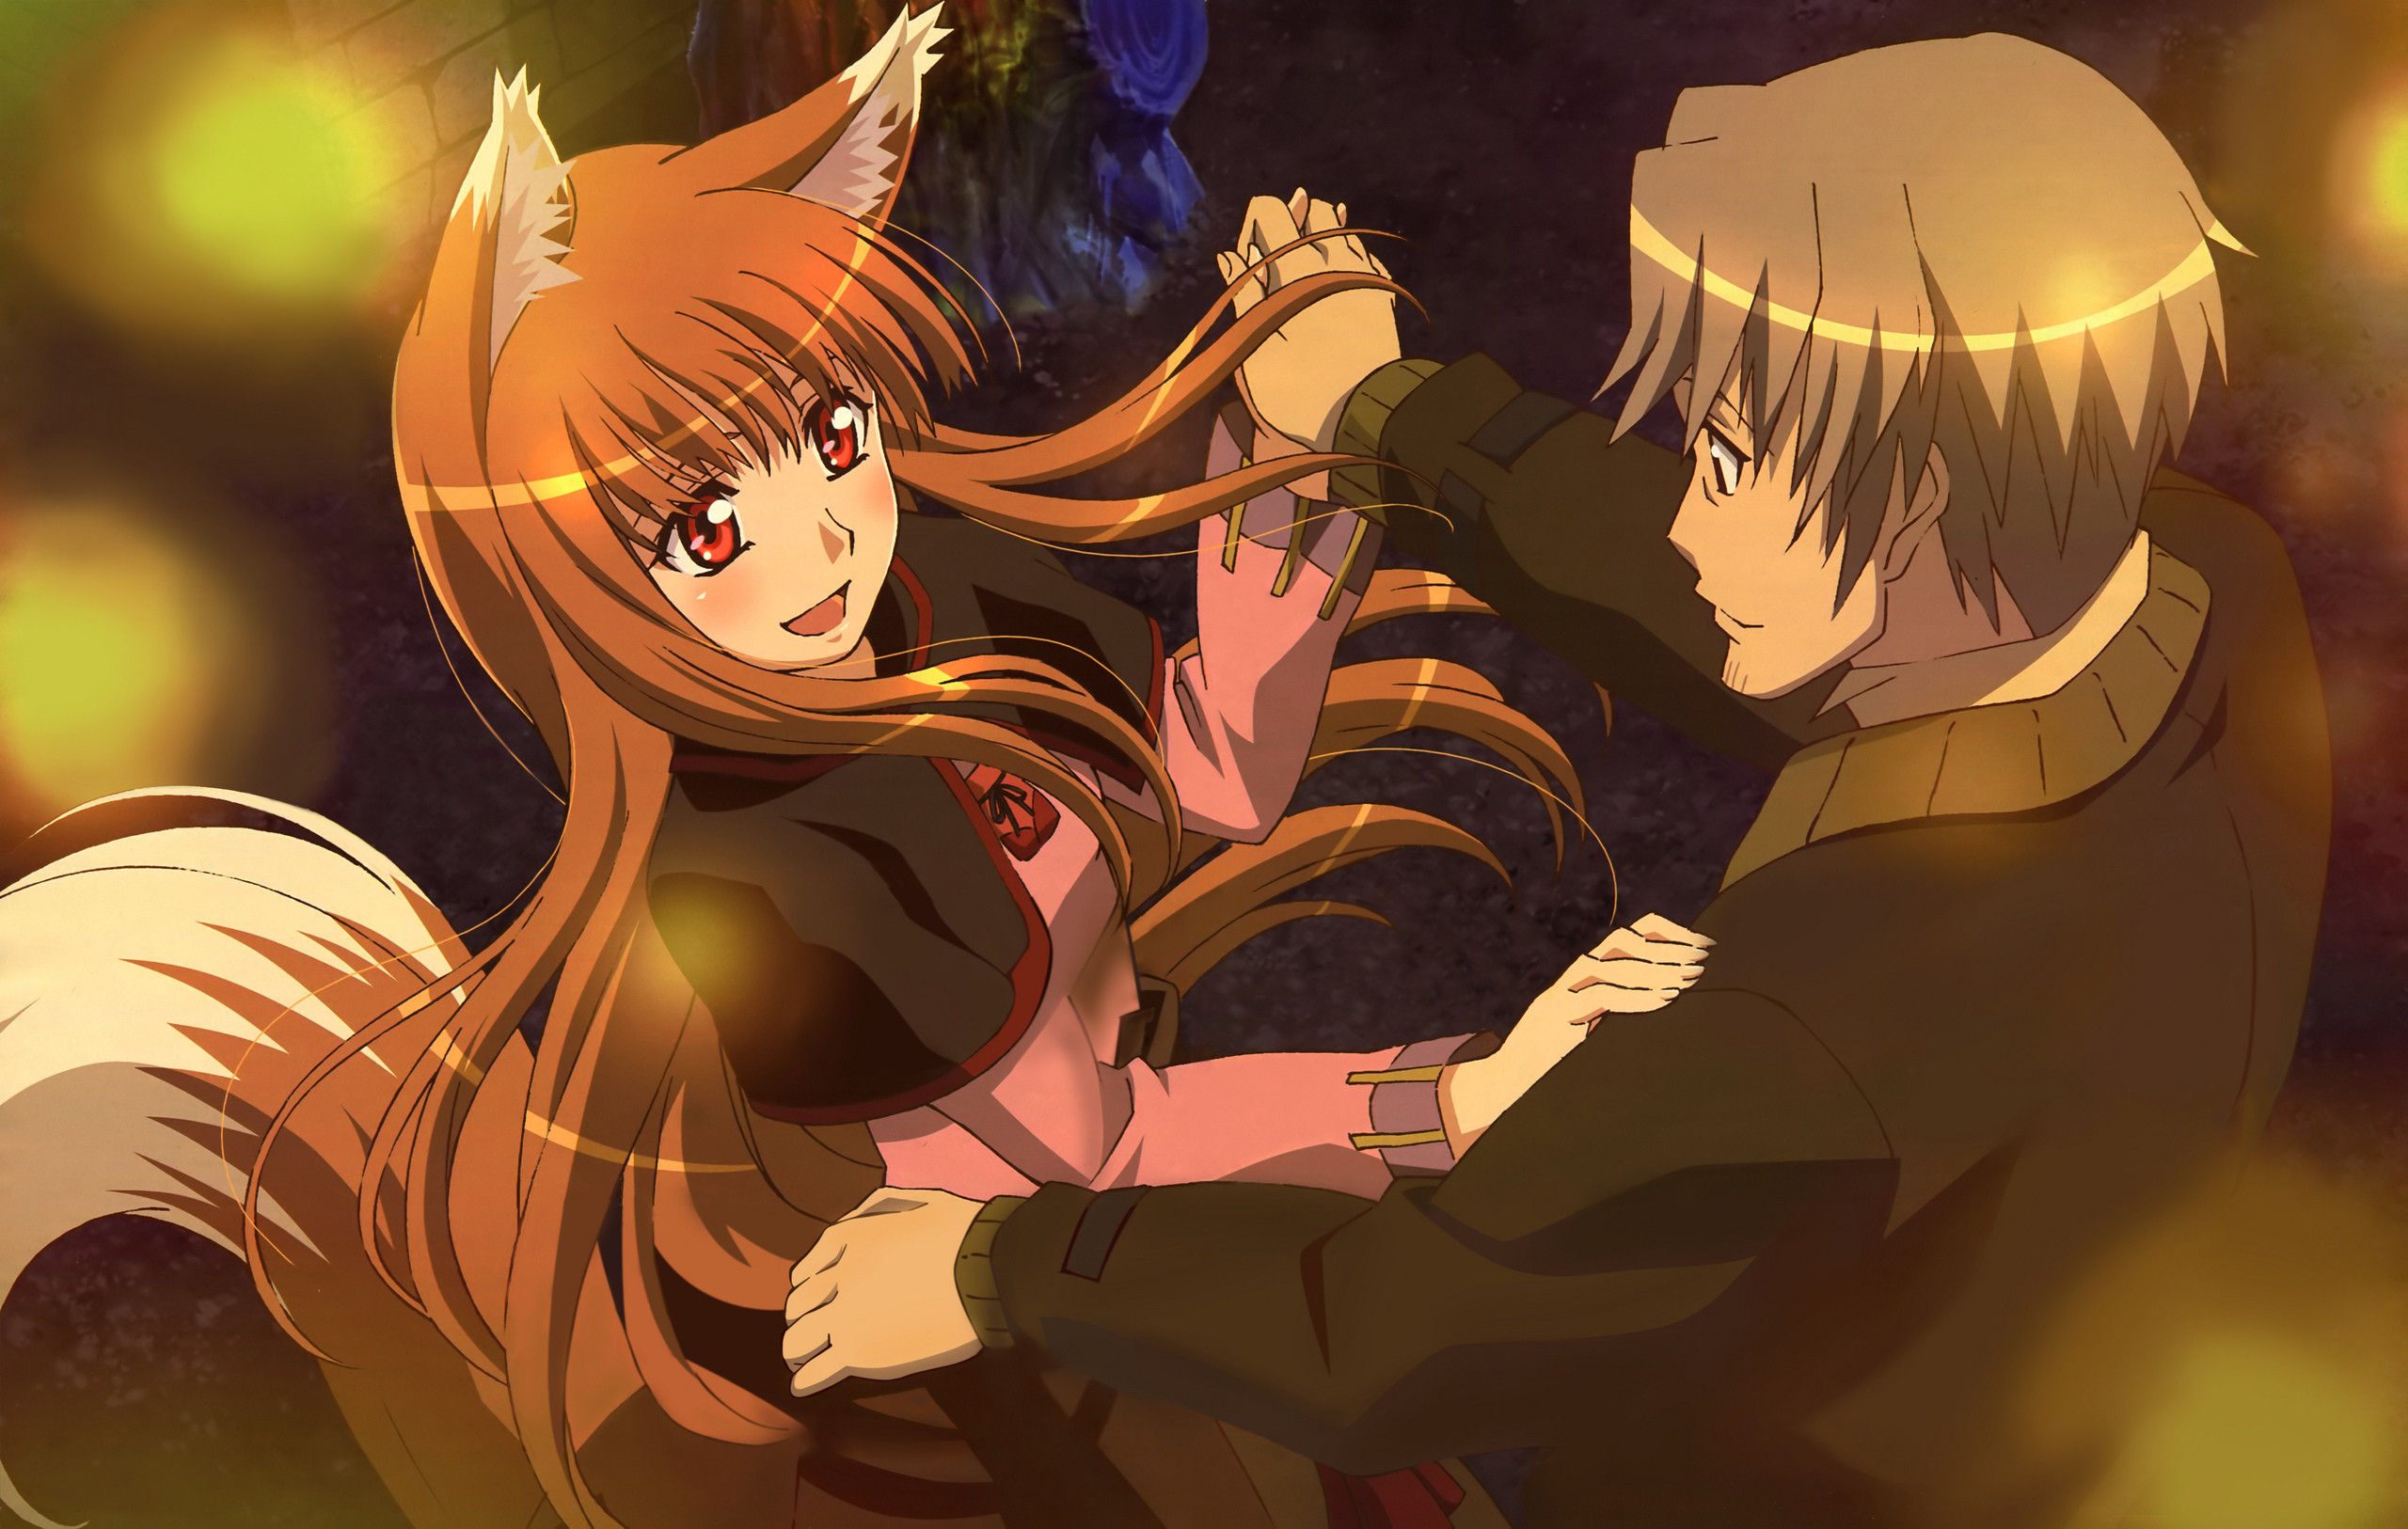 Spice And Wolf Images Lawrence And Holo Dancing 2gether Hd